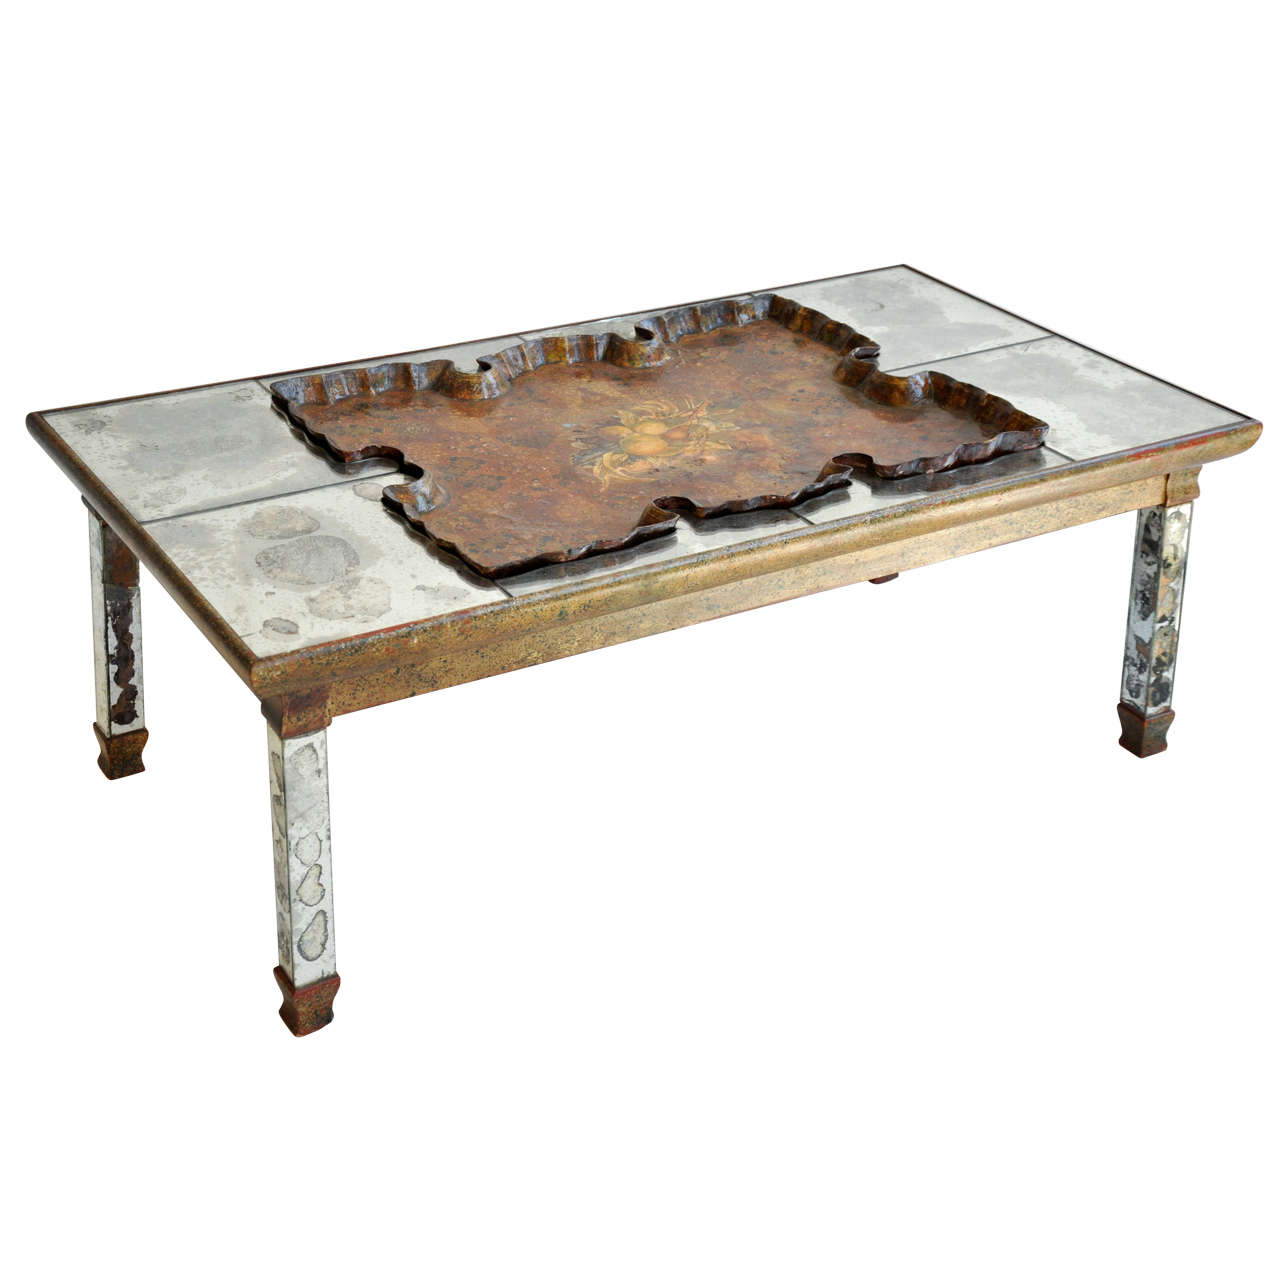 Mirrored Cocktail Table With Scalloped Tray At 1stdibs